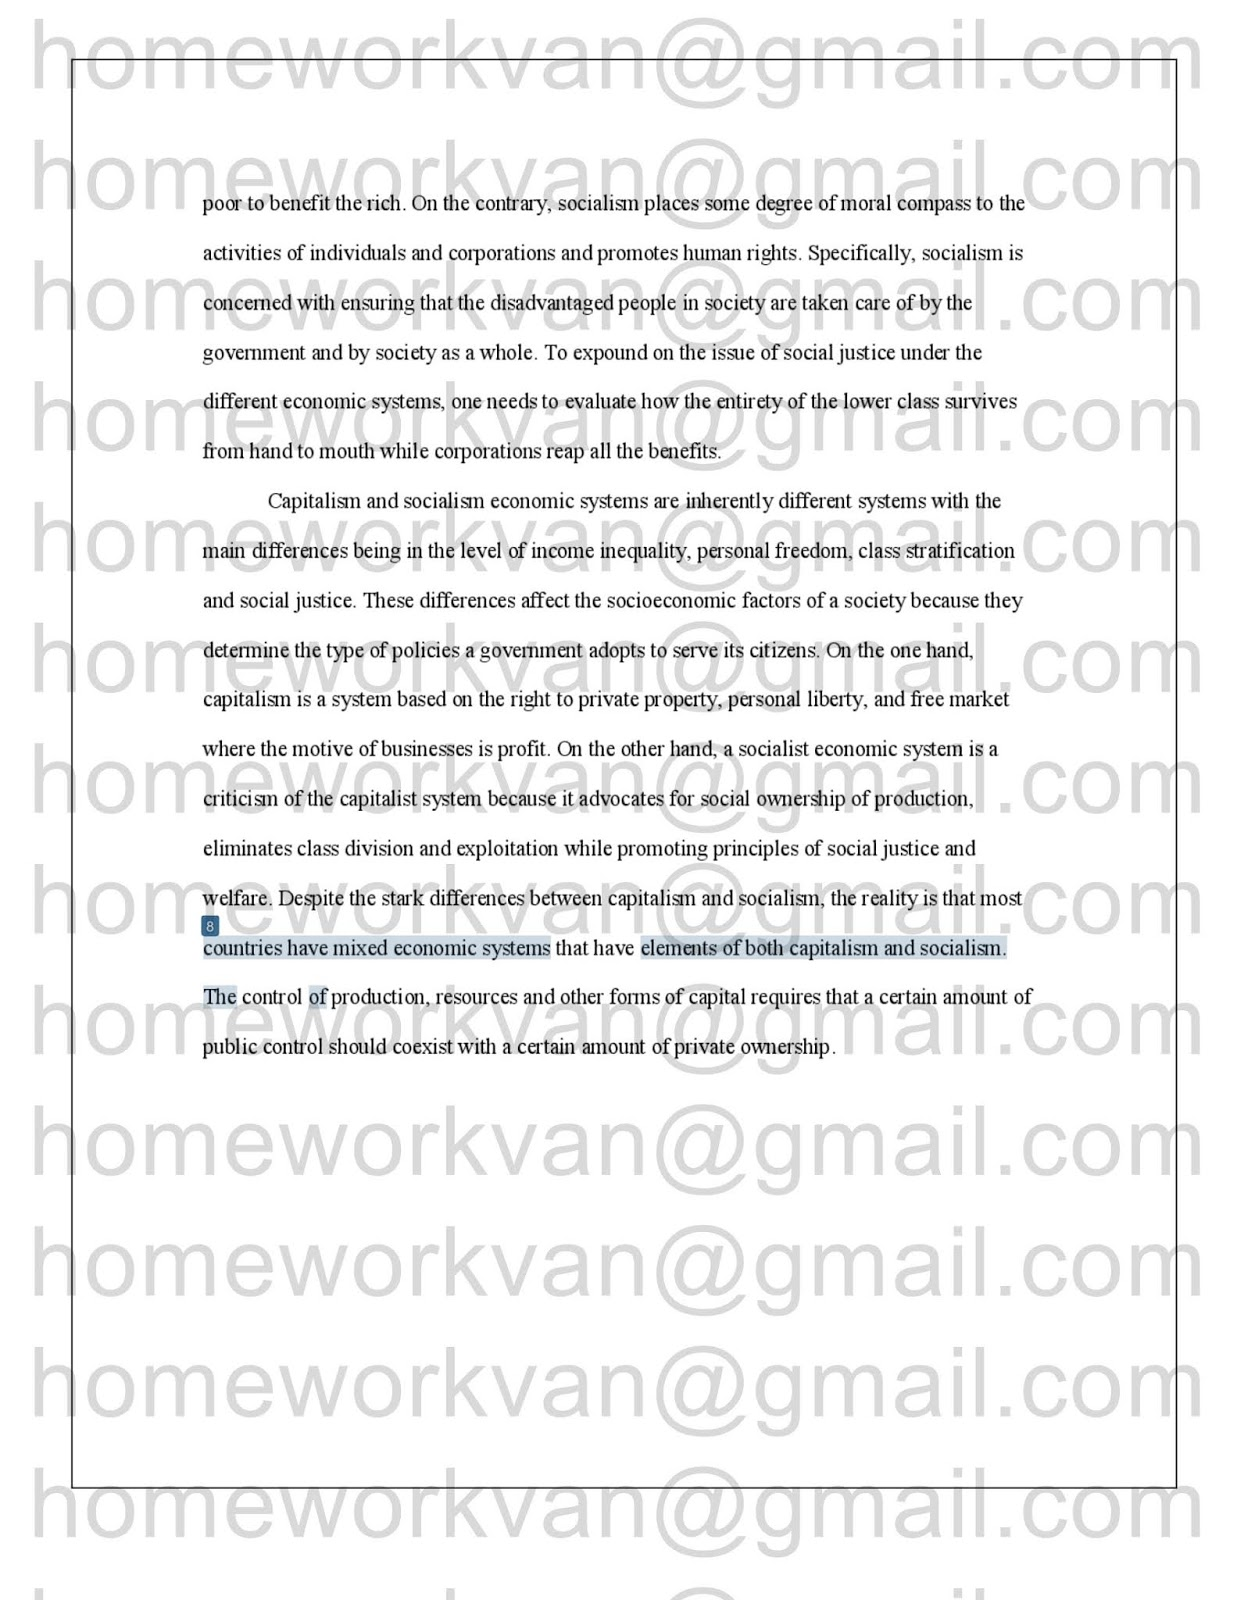 Homeworkvan Official Blog Compare And Contrast Essay A Comparison  The Following Is Plagiarism Report For Compare And Contrast Essay A  Comparison Of Capitalism And Socialism Economic Systems Essay  By  Homeworkvan